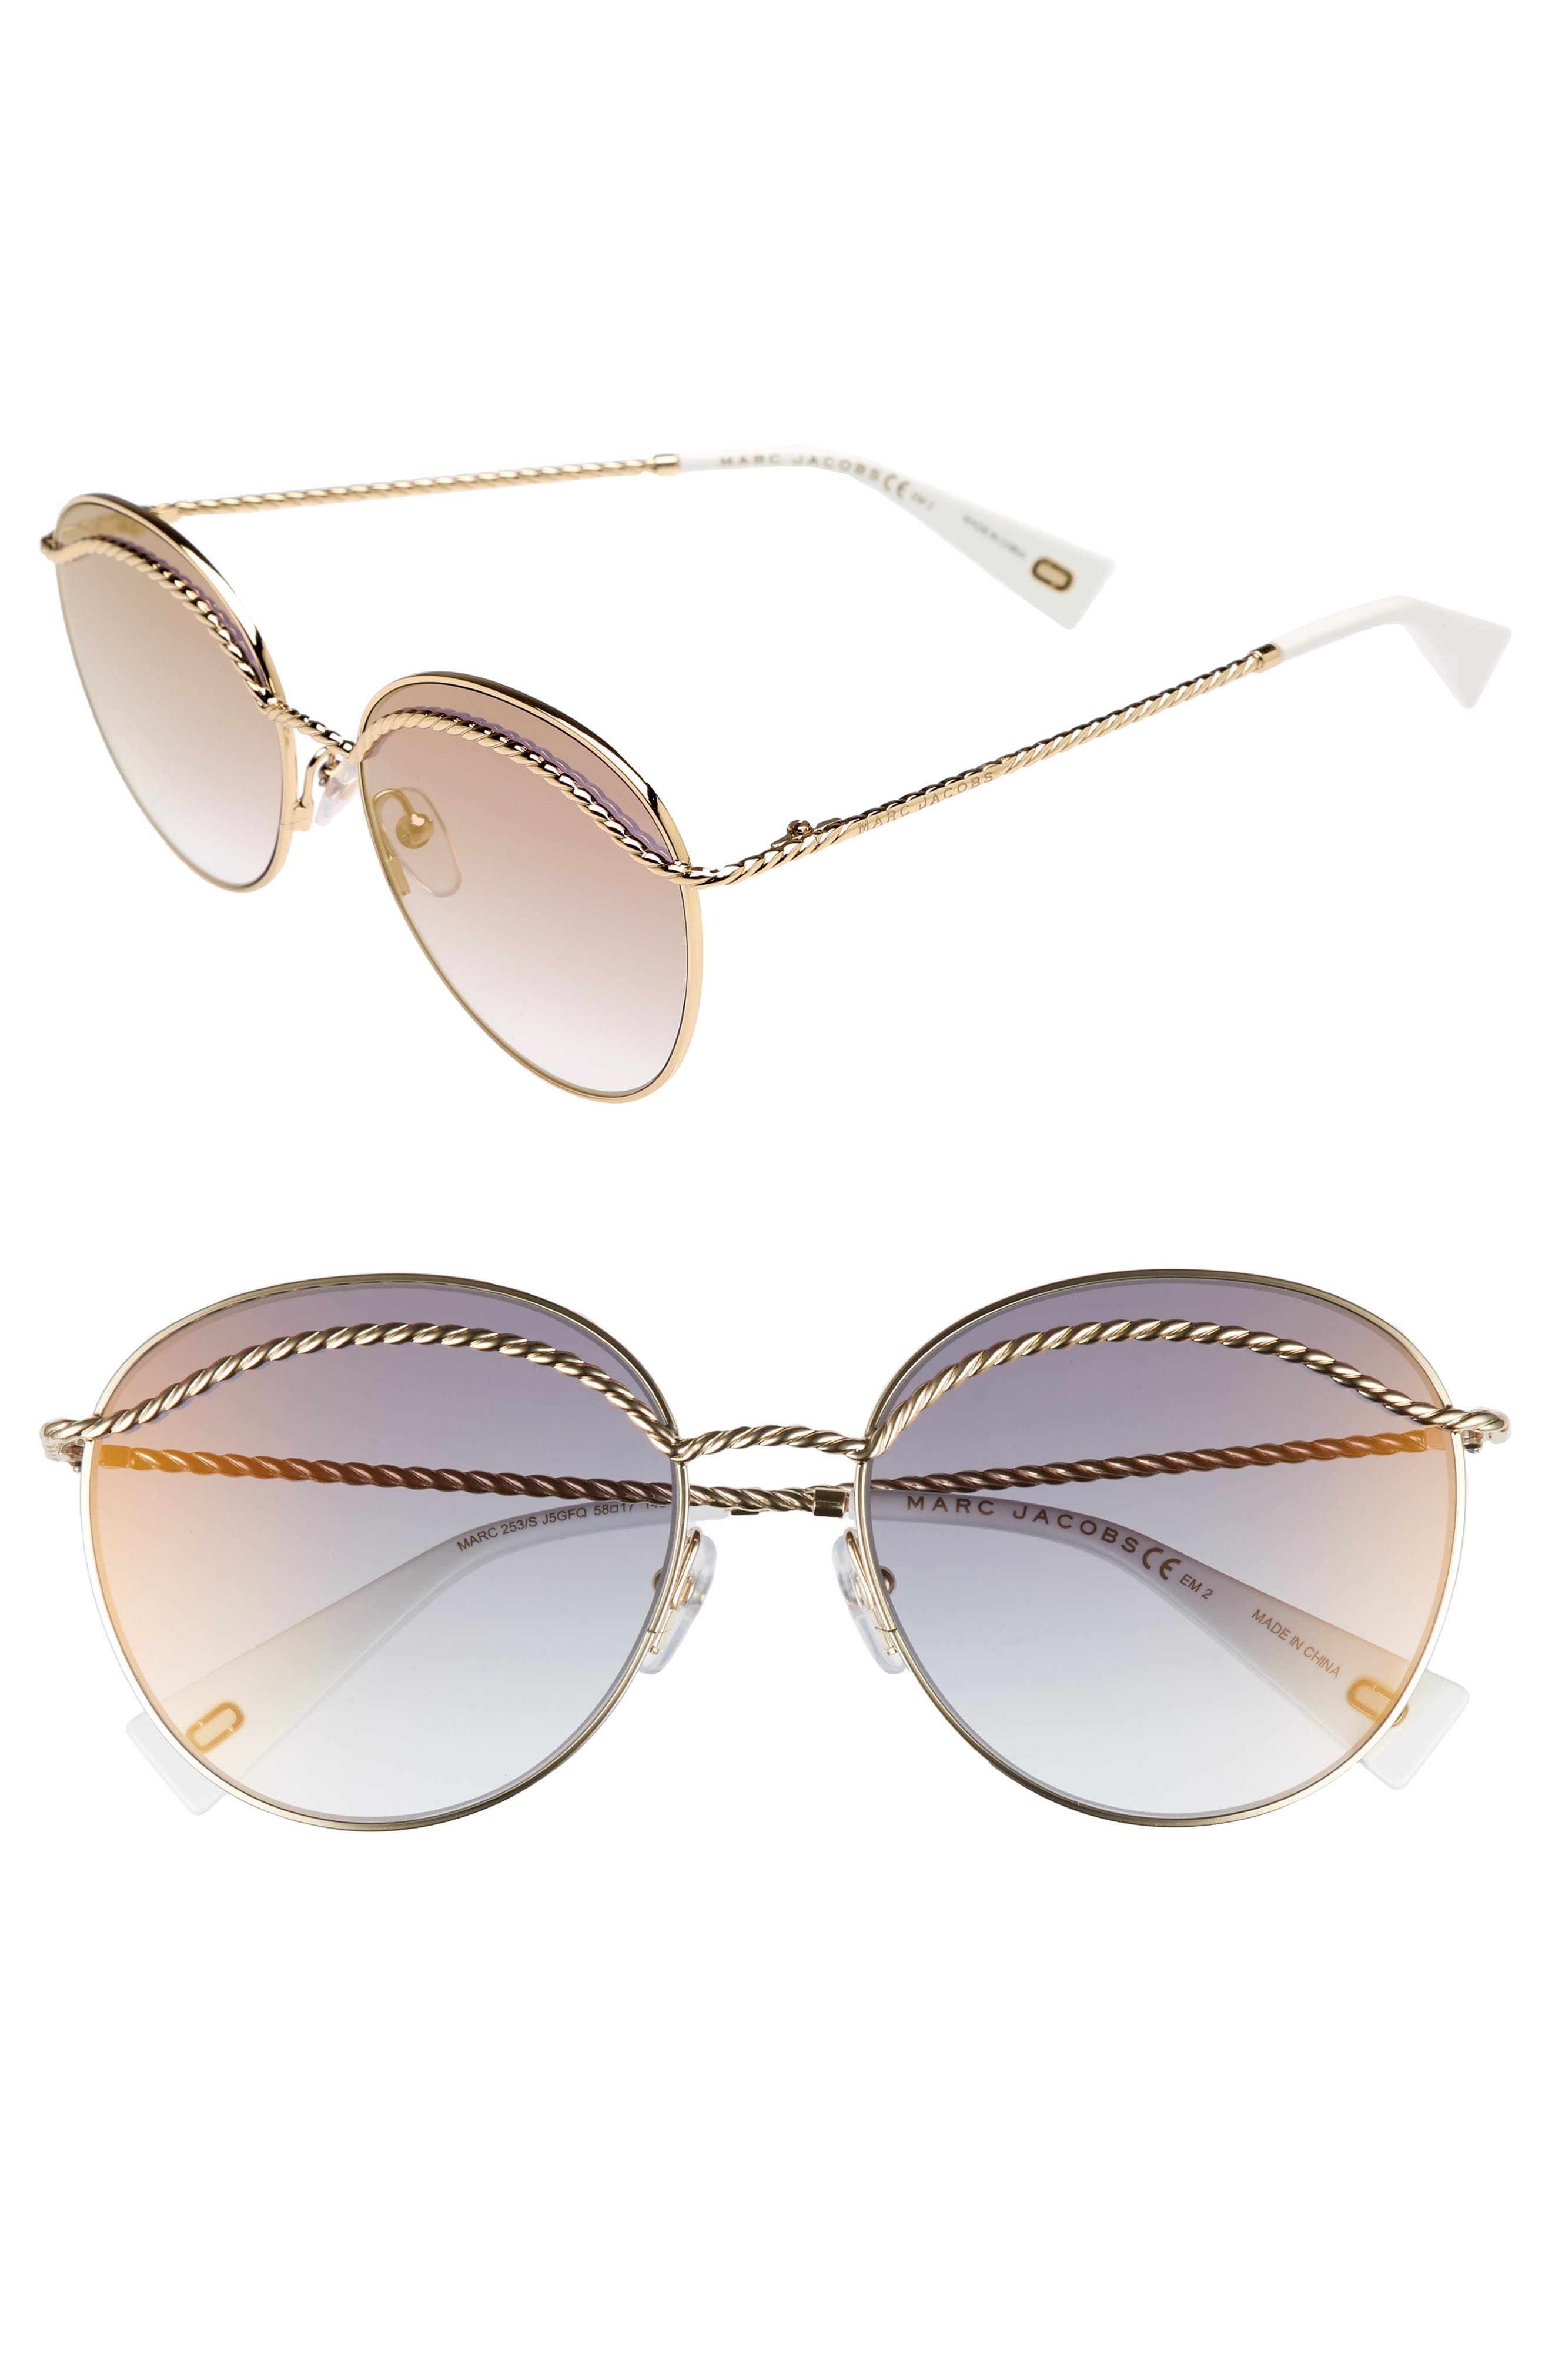 Main Image - MARC JACOBS 58mm Round Sunglasses